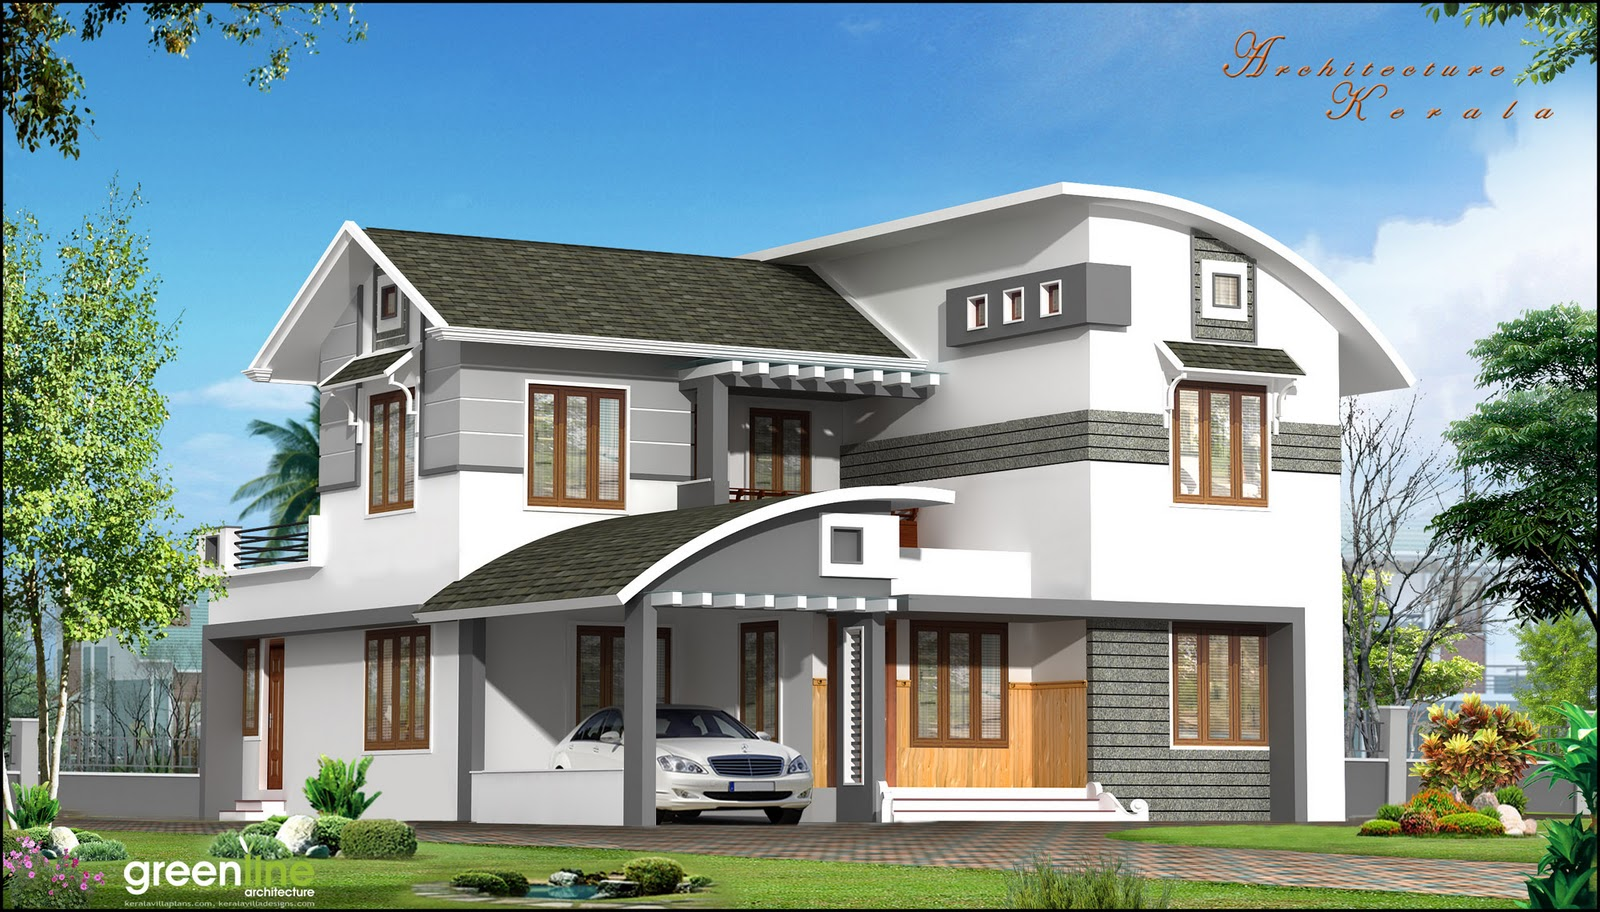 Architecture kerala a beautiful house elevation for Kerala house photos